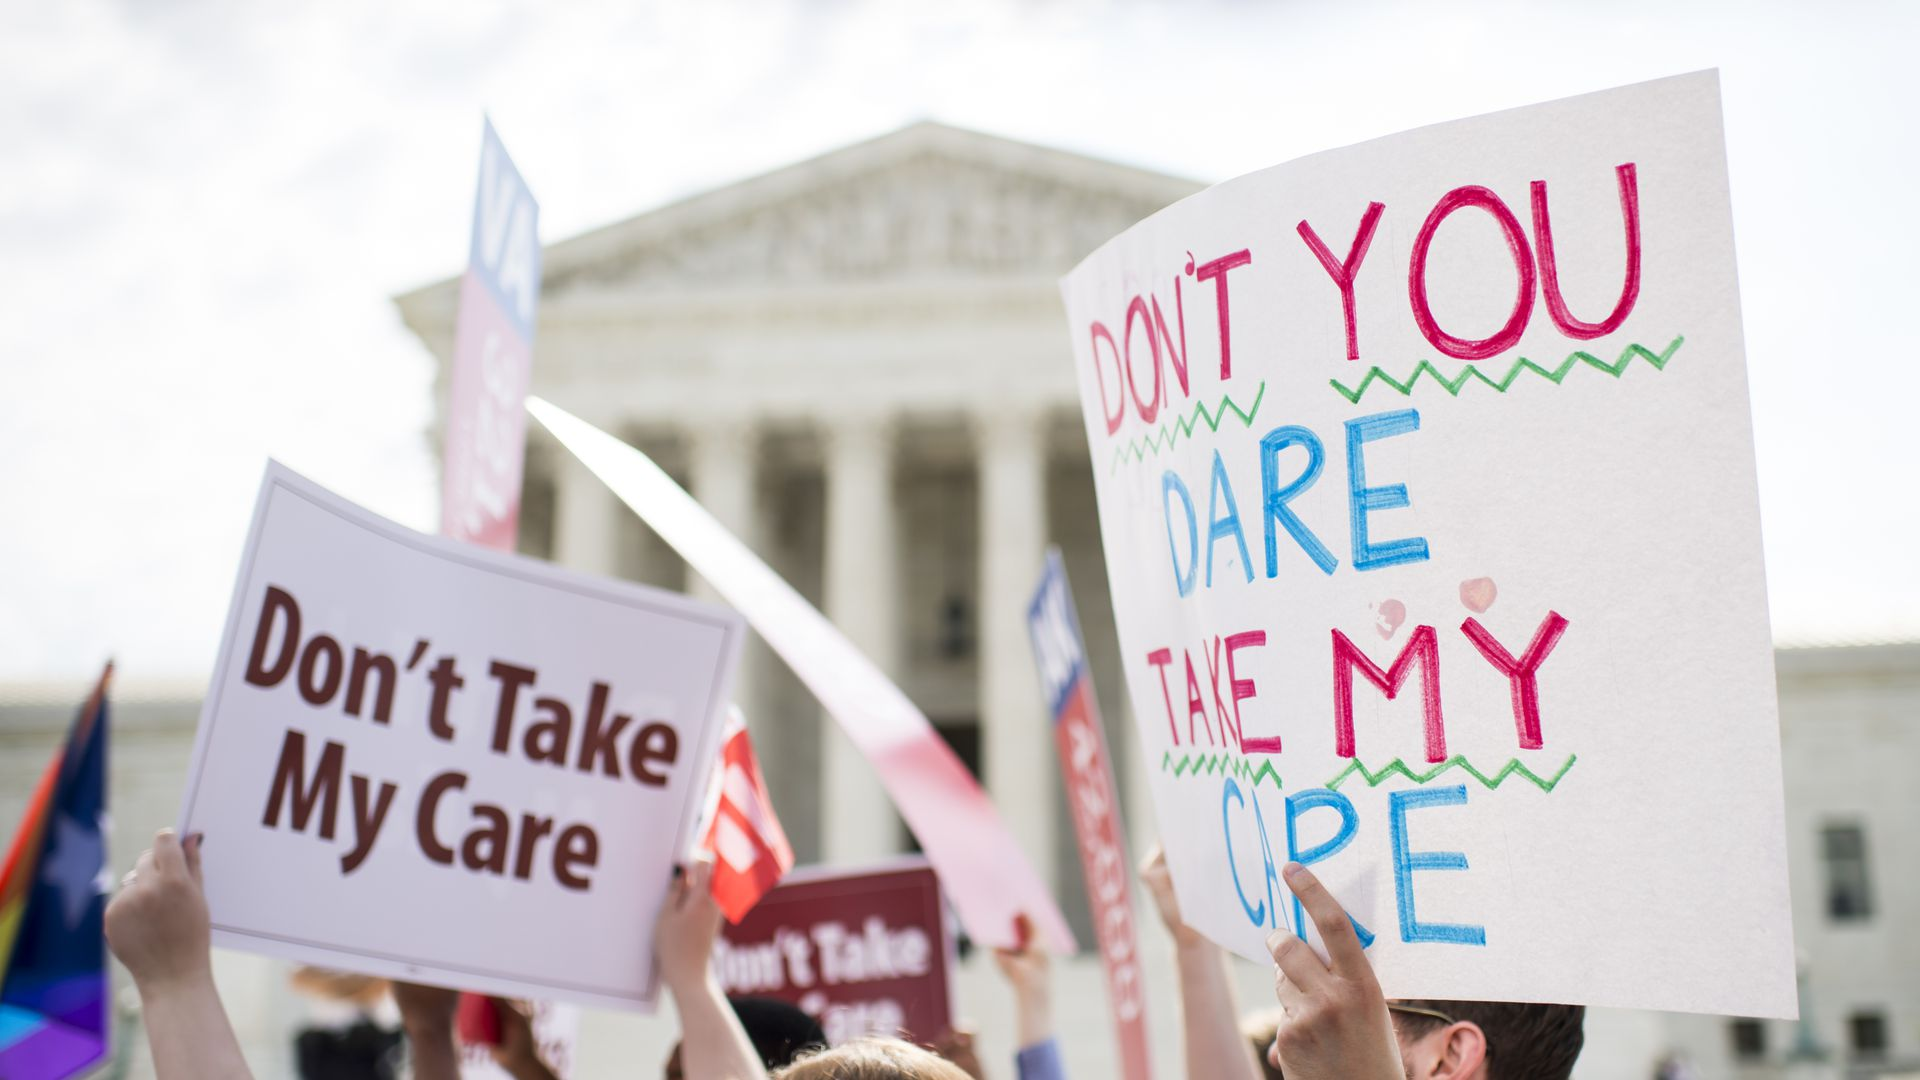 Affordable Care Act supporters hold up signs outside the Supreme Court.